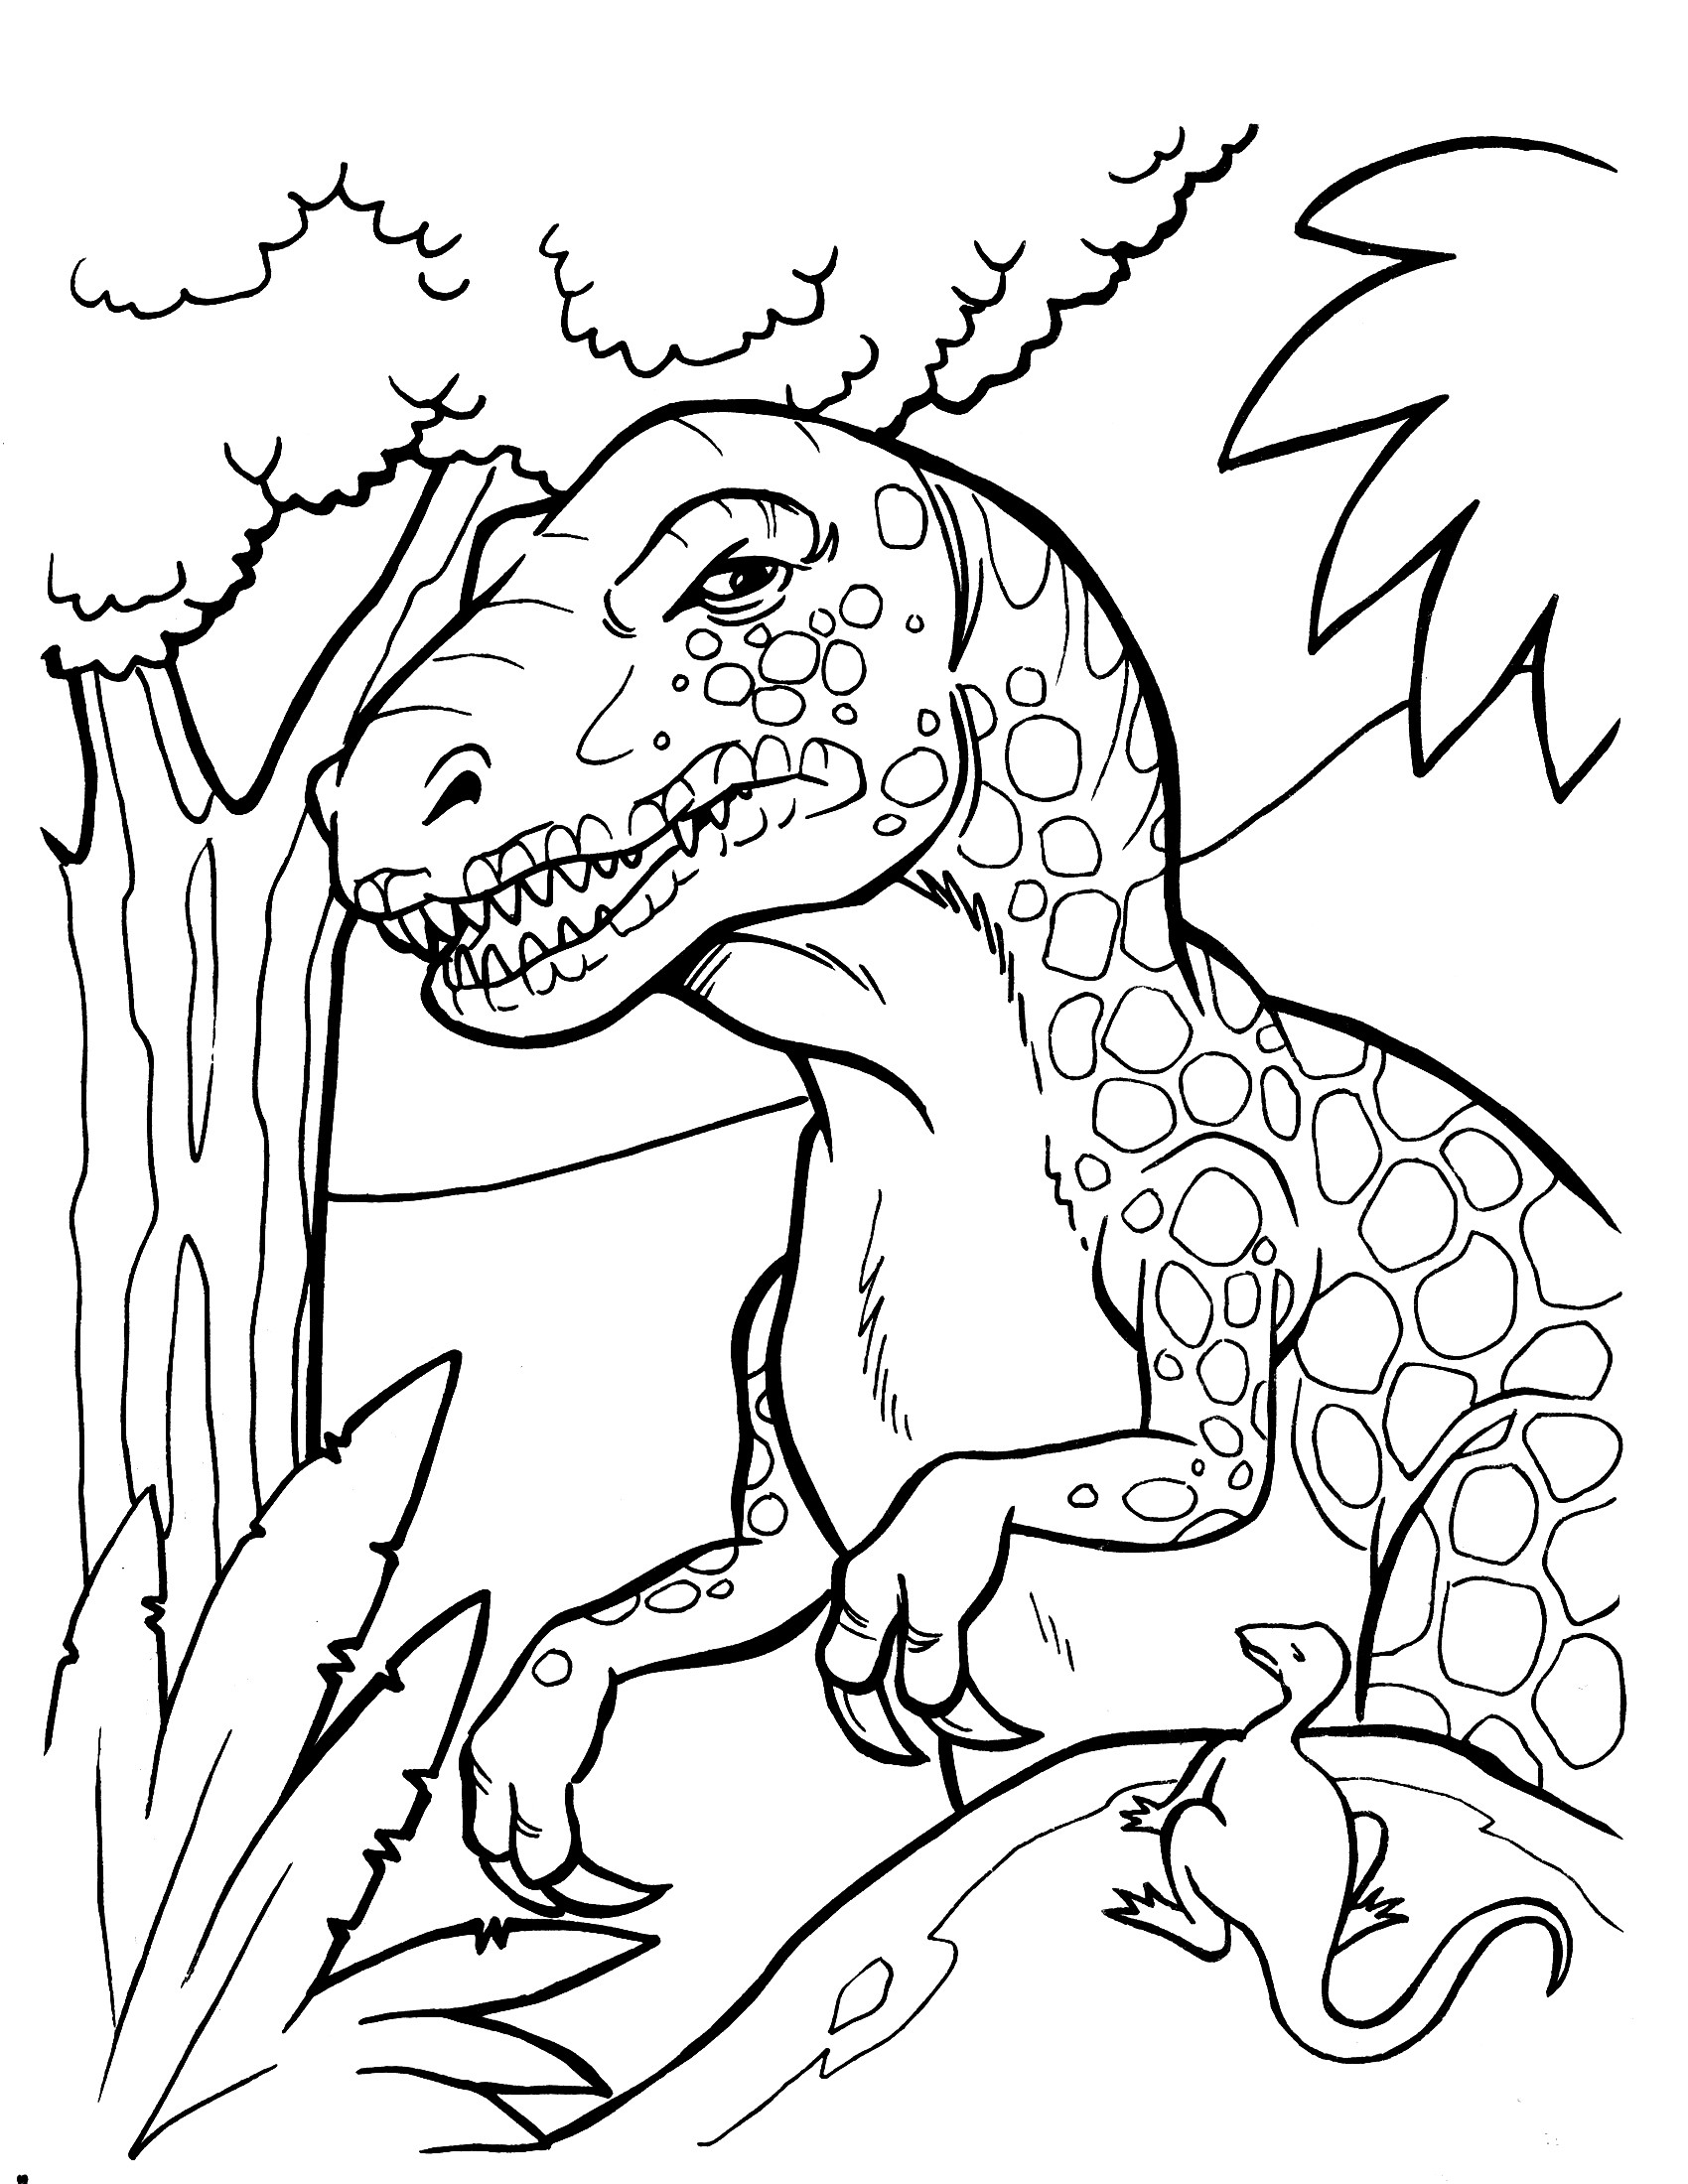 Best ideas about Free Printable Coloring Sheets Dinosaurs . Save or Pin Dinosaur Coloring Pages Now.